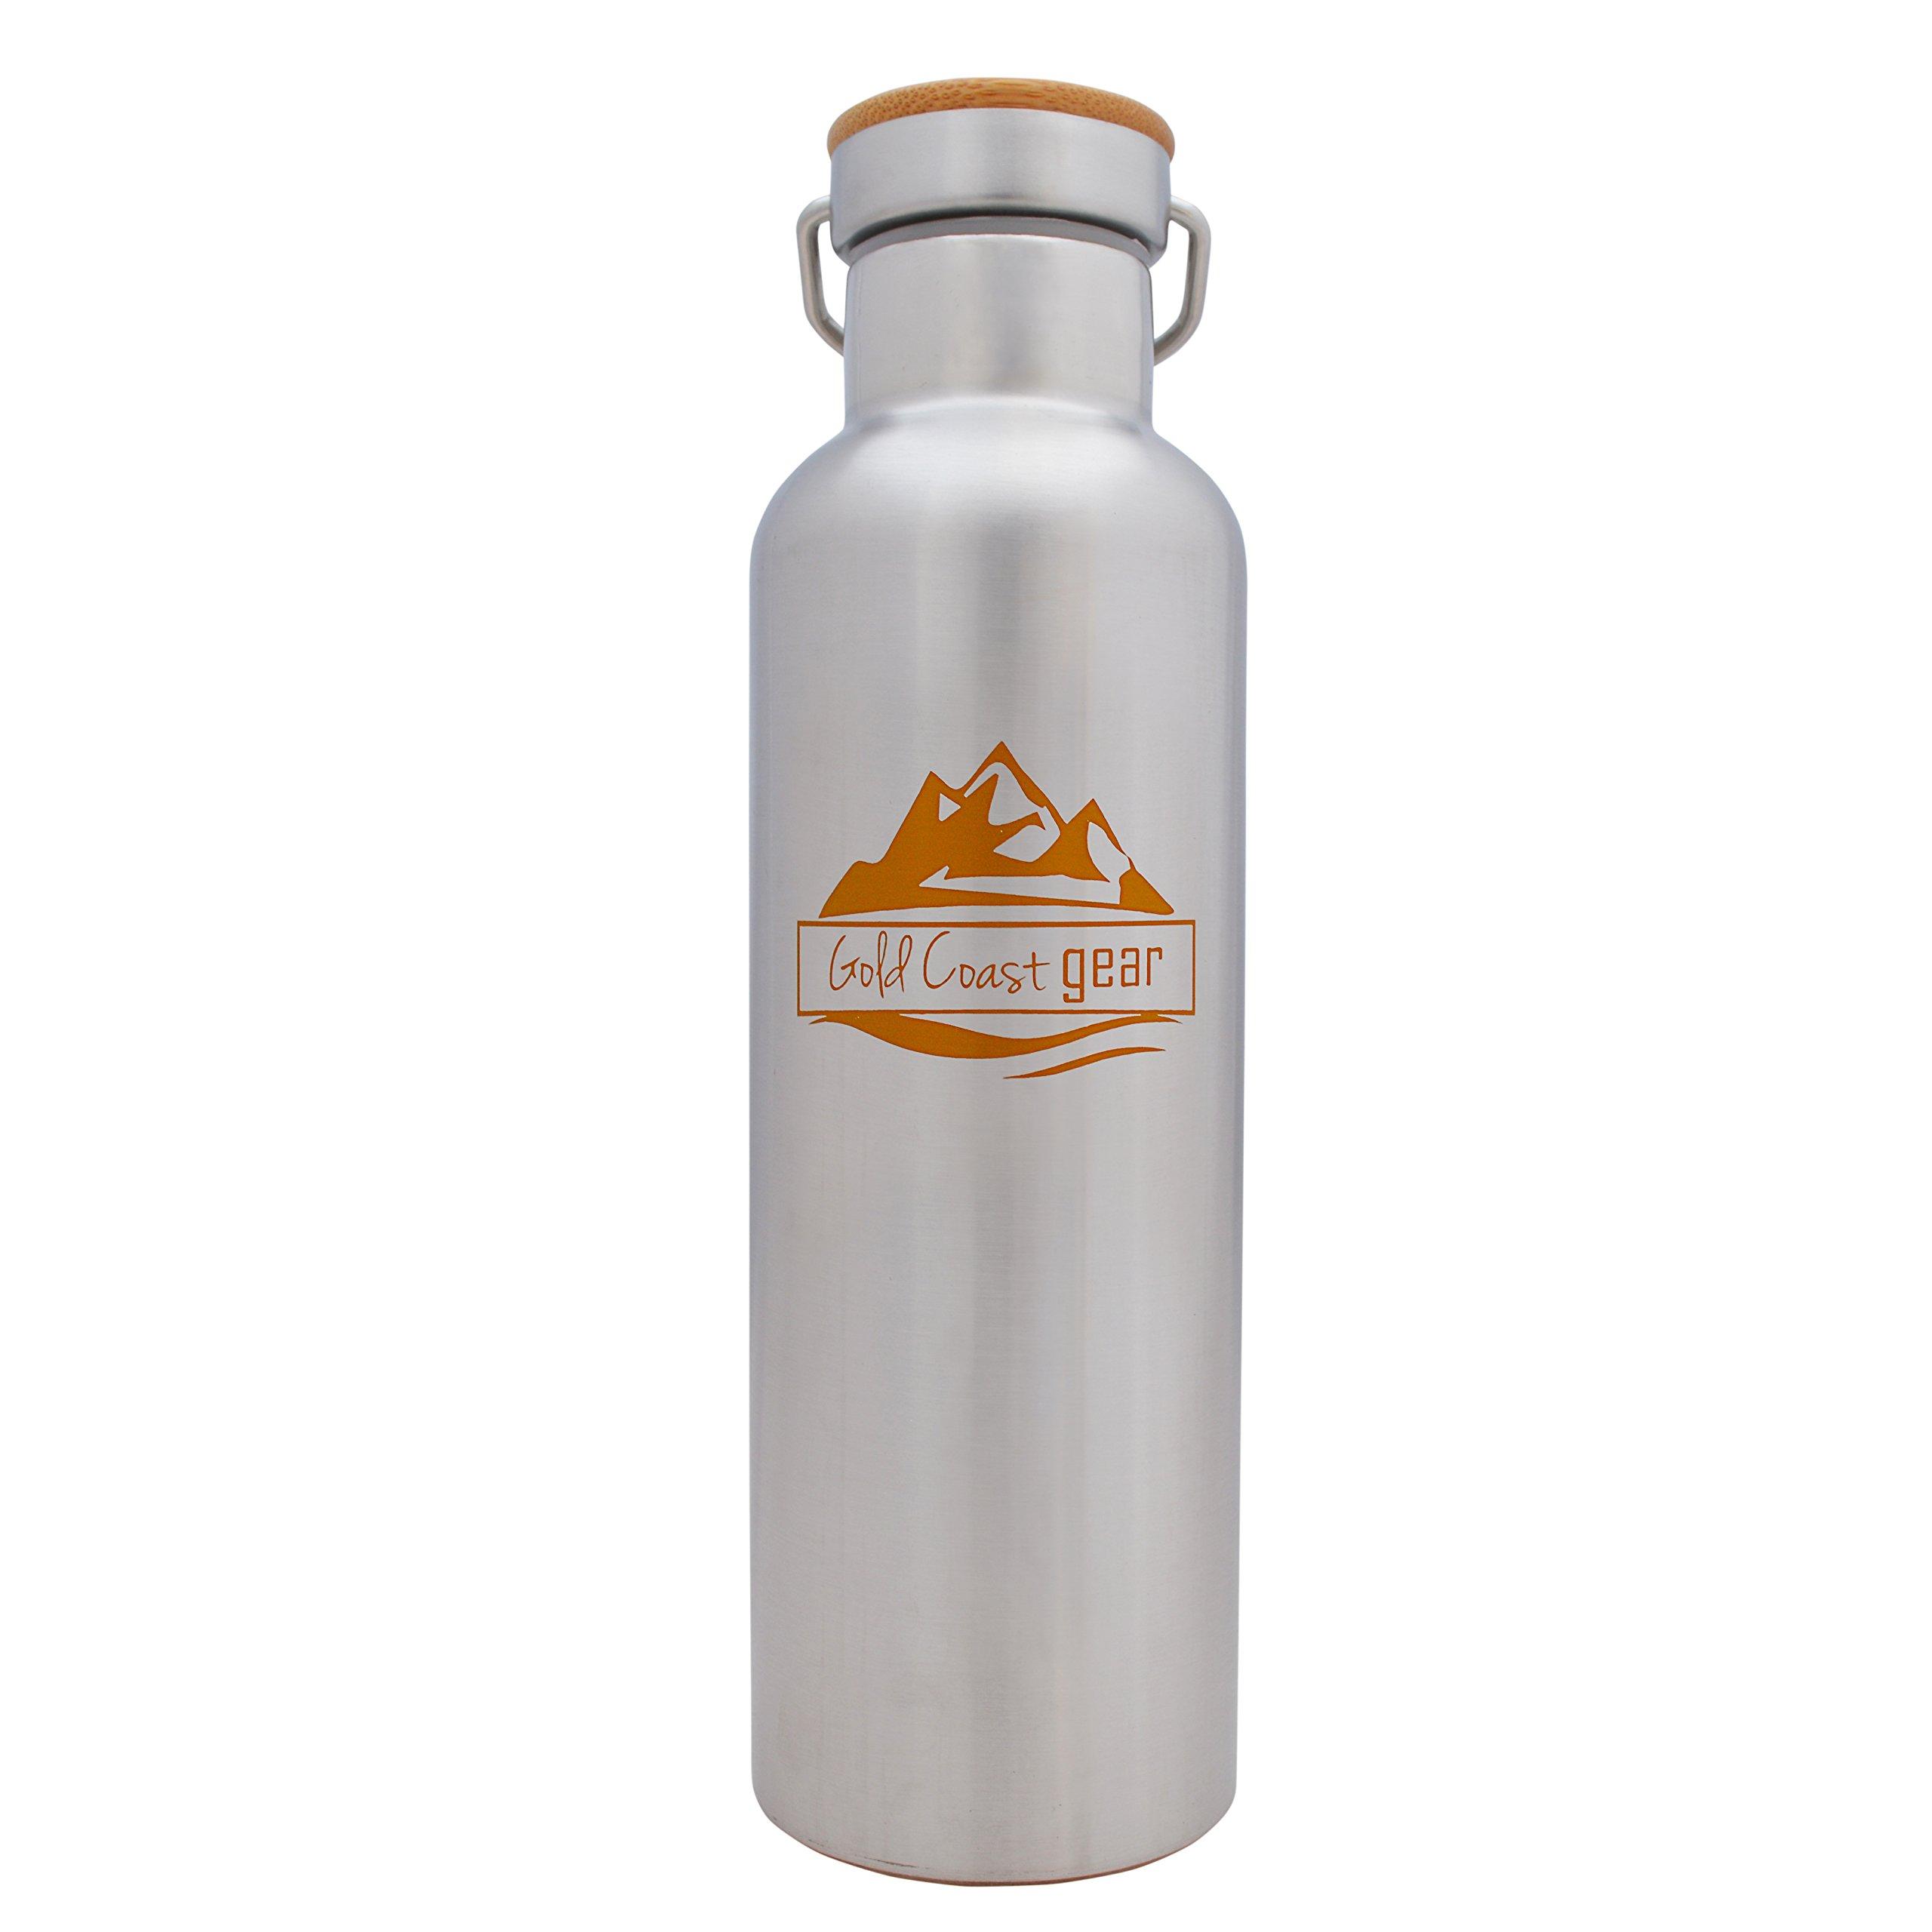 Vacuum Insulated Stainless Steel Water Bottle ( 25 OZ / 750 ML ). Zero Condensation! (750ml) by Gold Coast gear (Image #1)